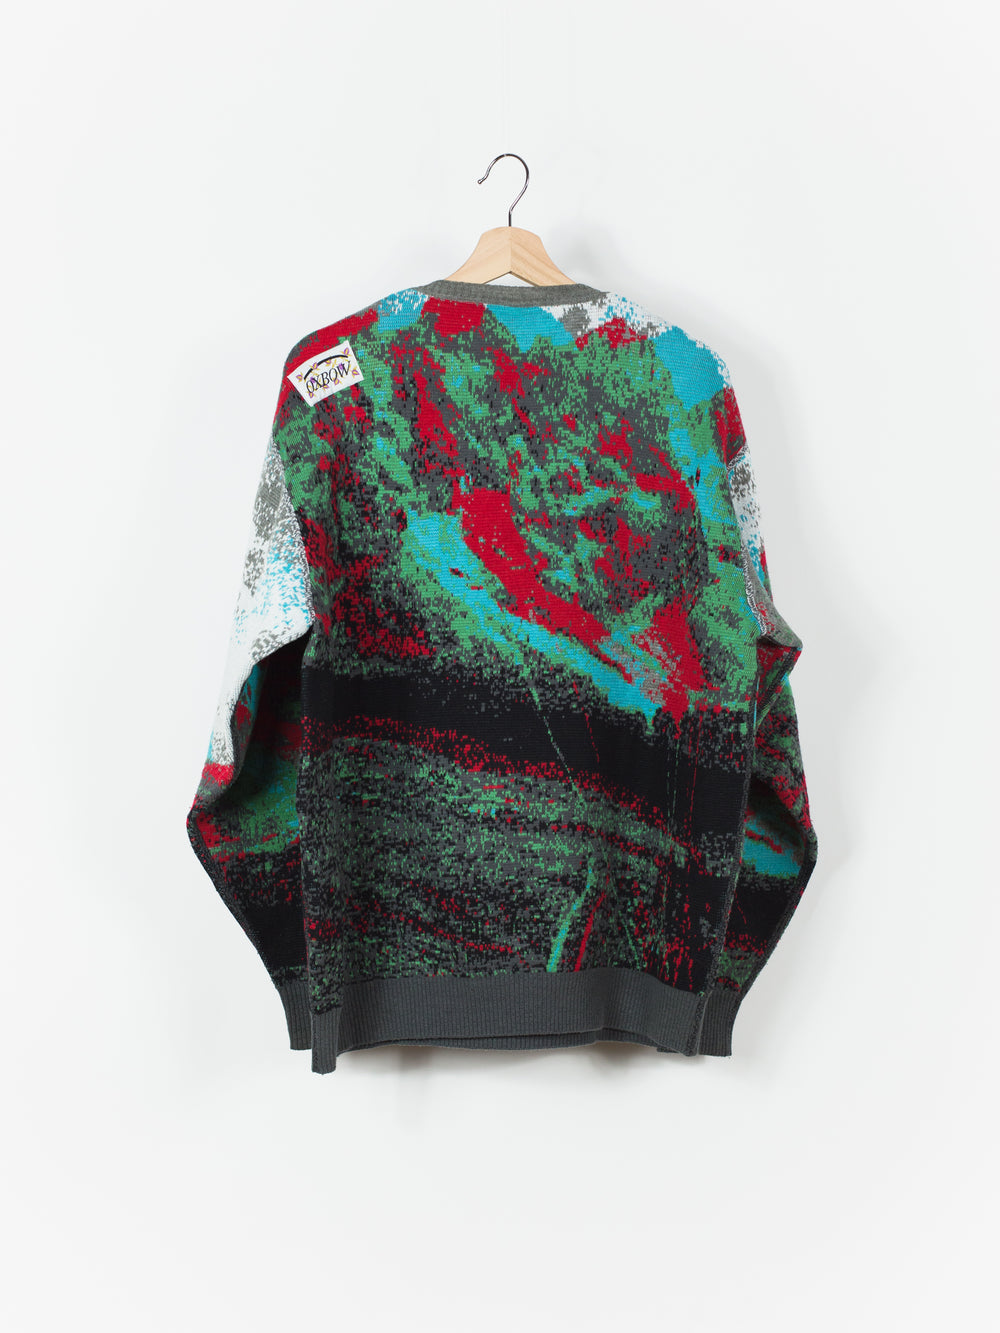 Bless x Oxbow 2009 Anaglyph 3D Skolpen Knit Sweater